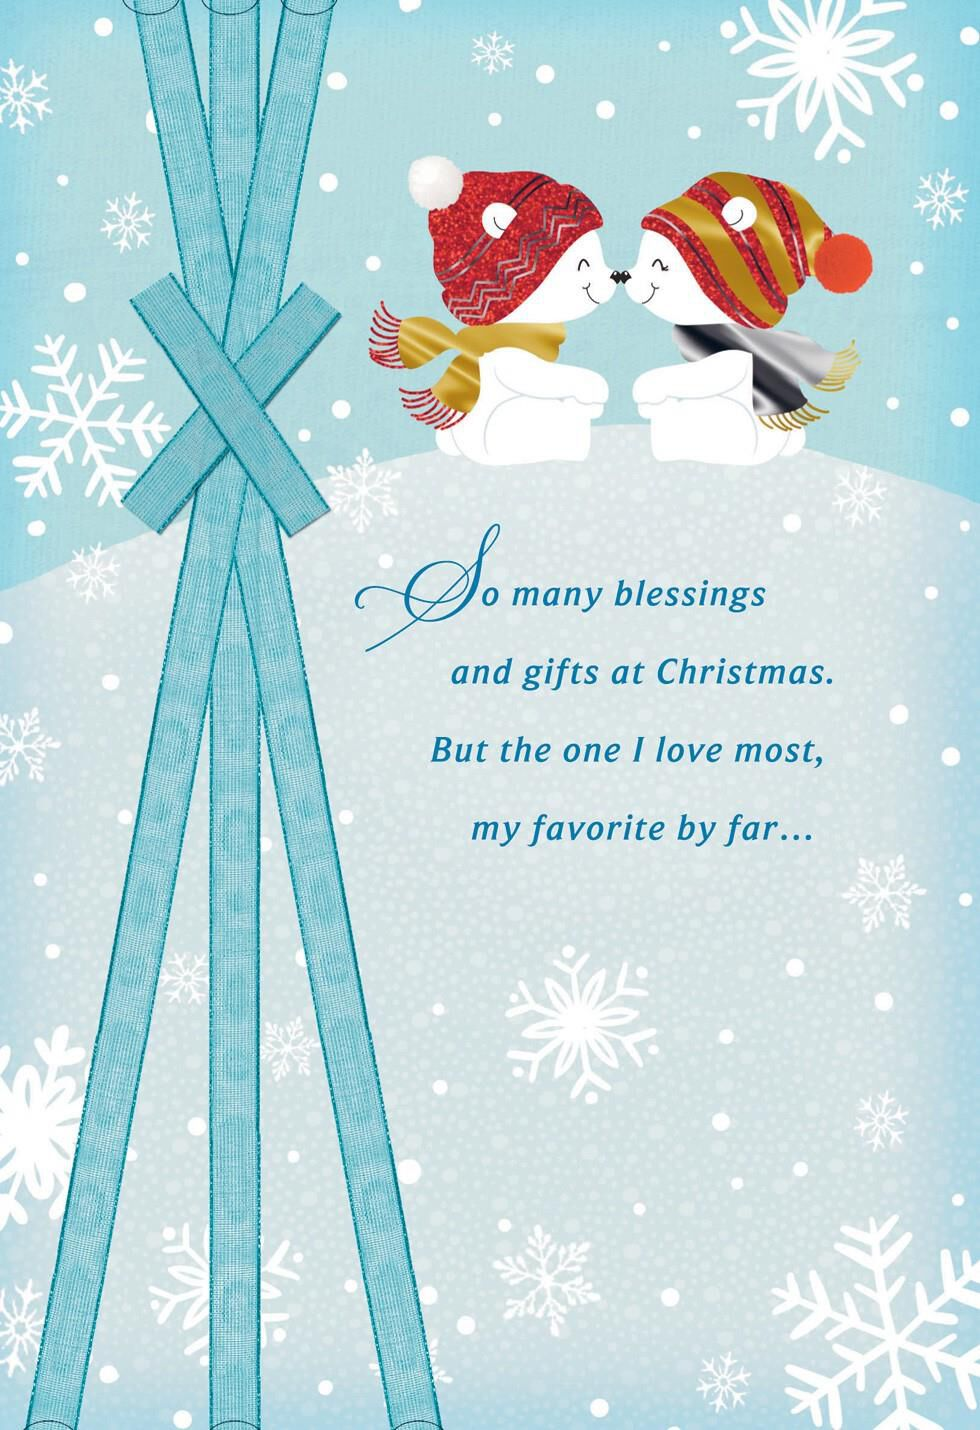 DaySpring Christian And Religious Greeting Cards